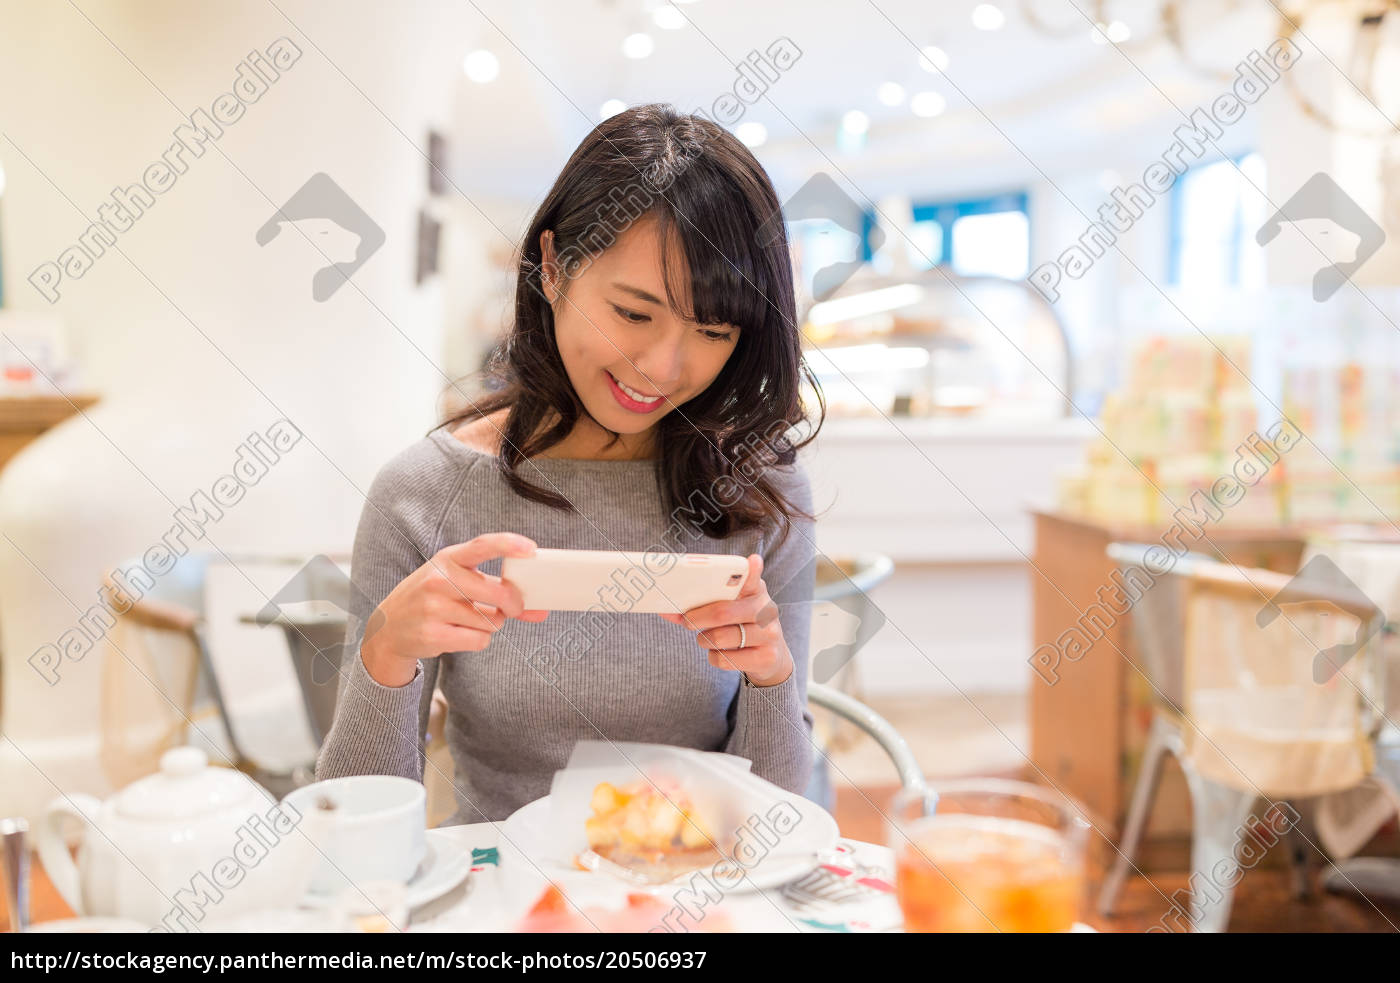 woman, taking, photo, on, her, slice - 20506937